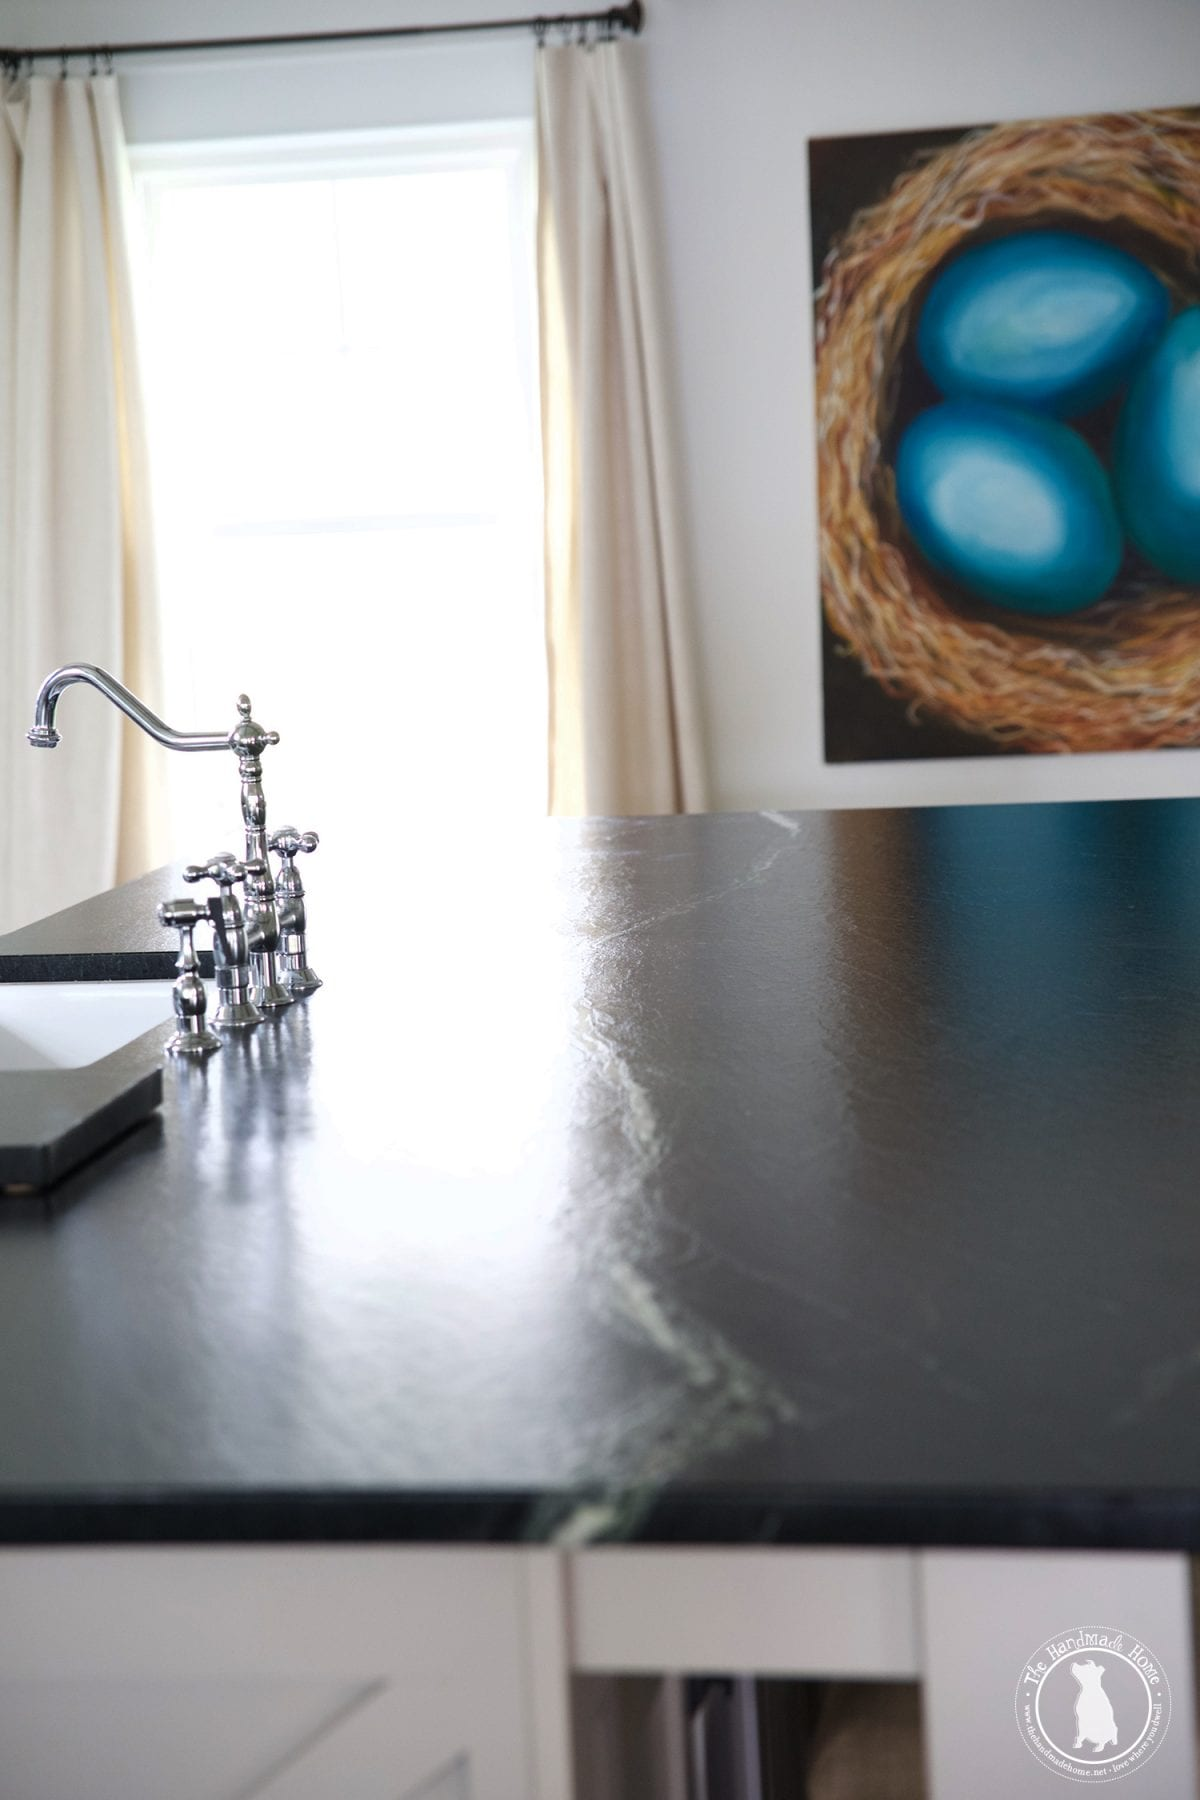 How Did You Have Your Soapstone Finished?